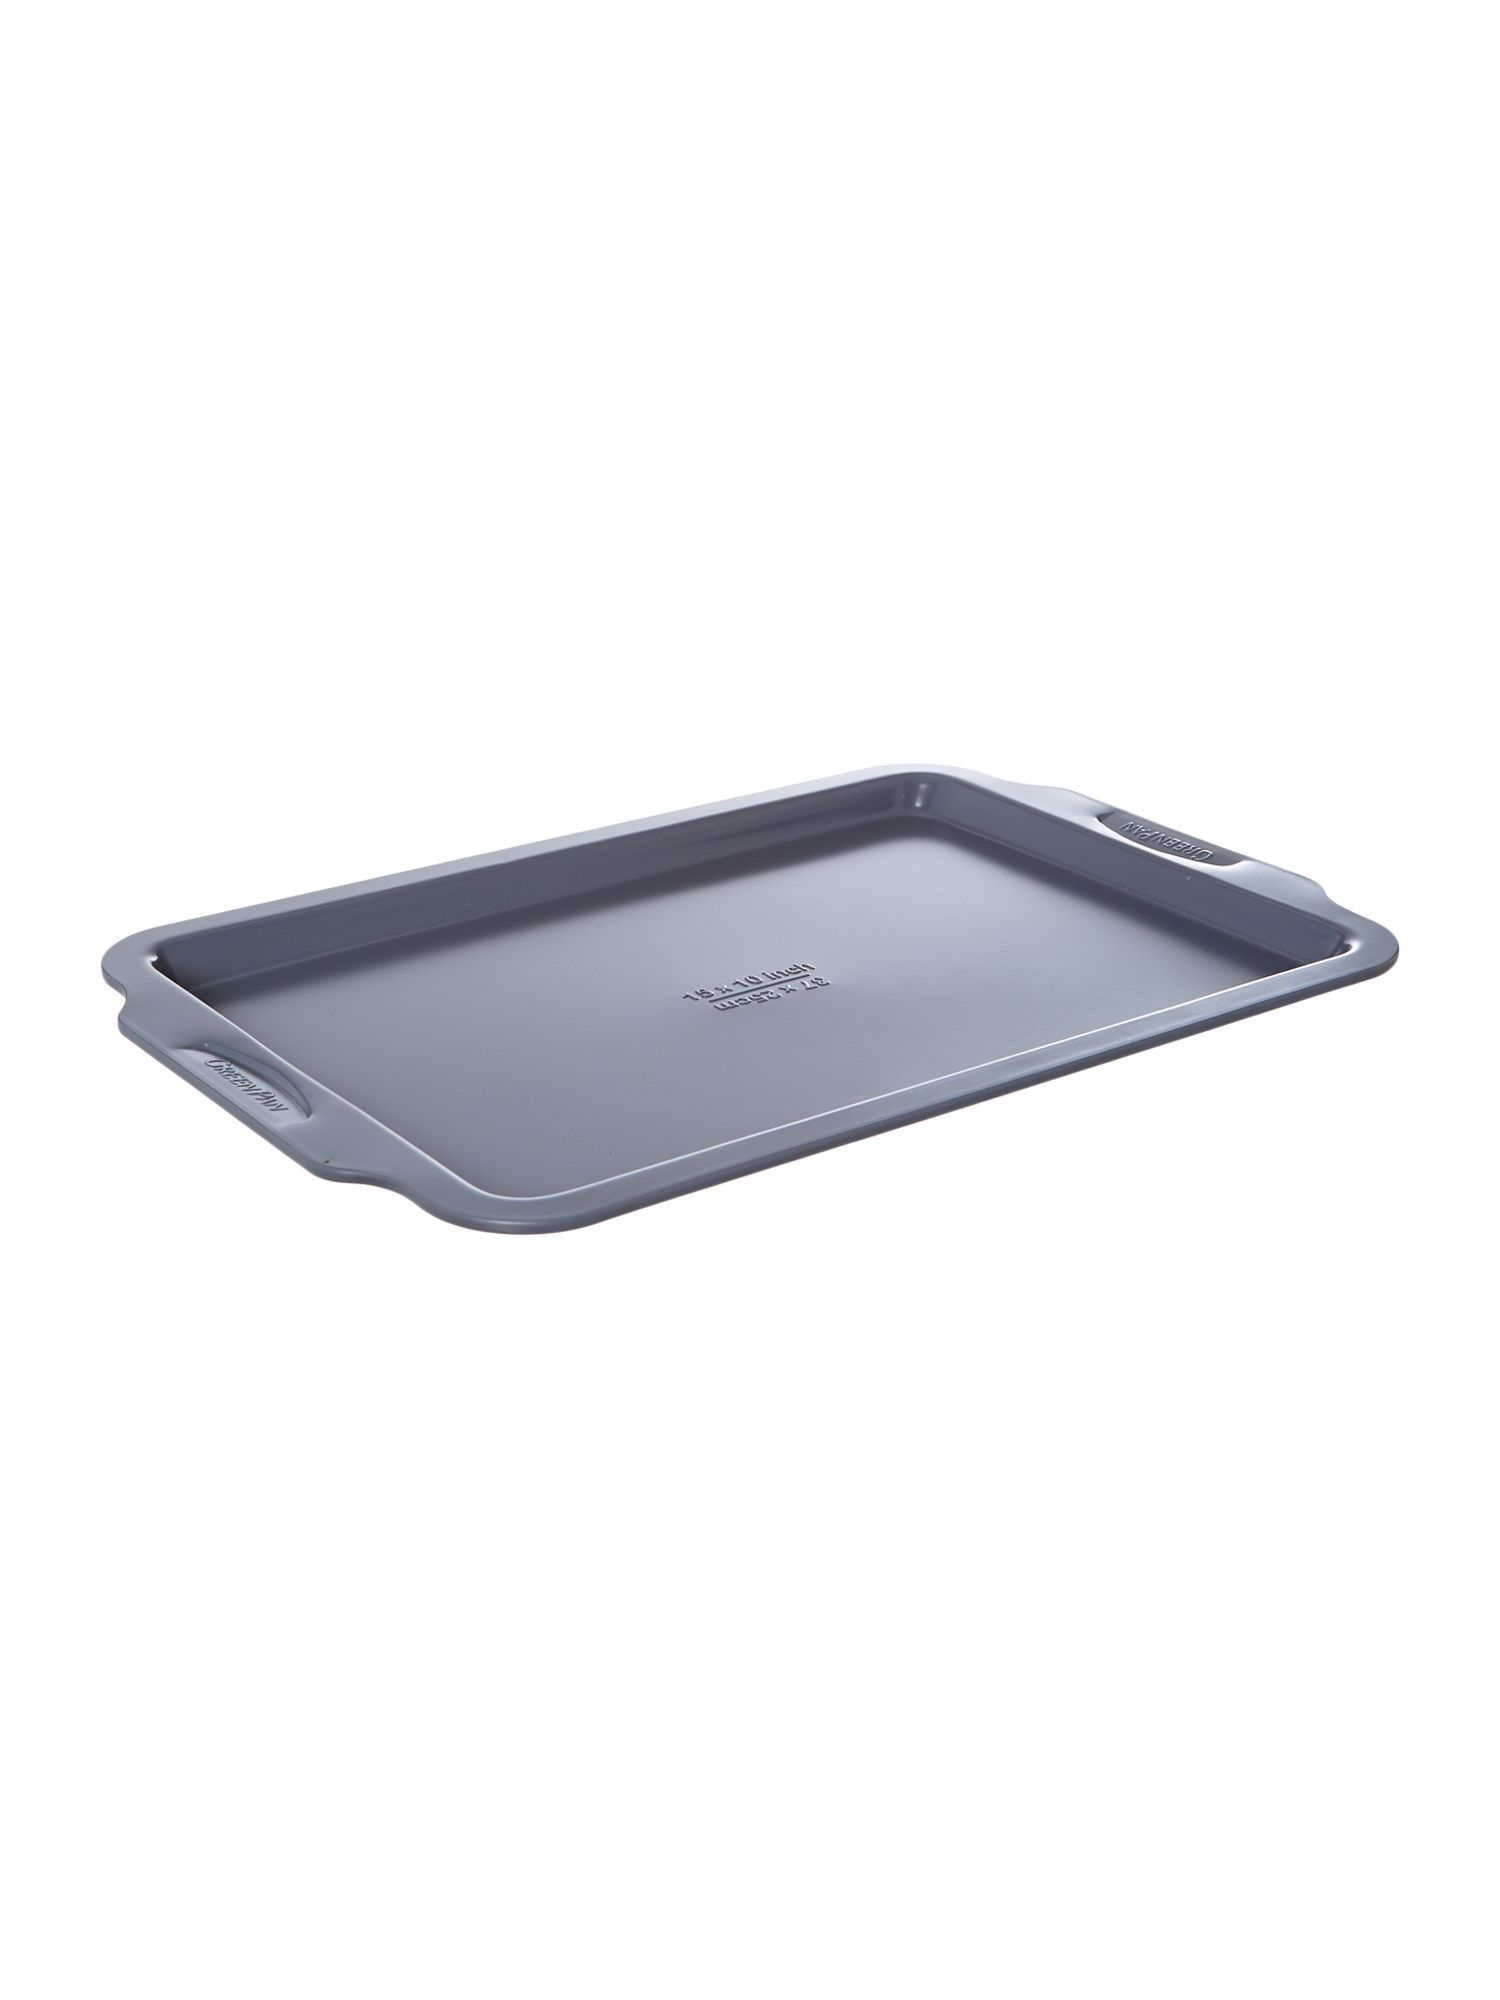 Boston large oven tray, 44x29cm